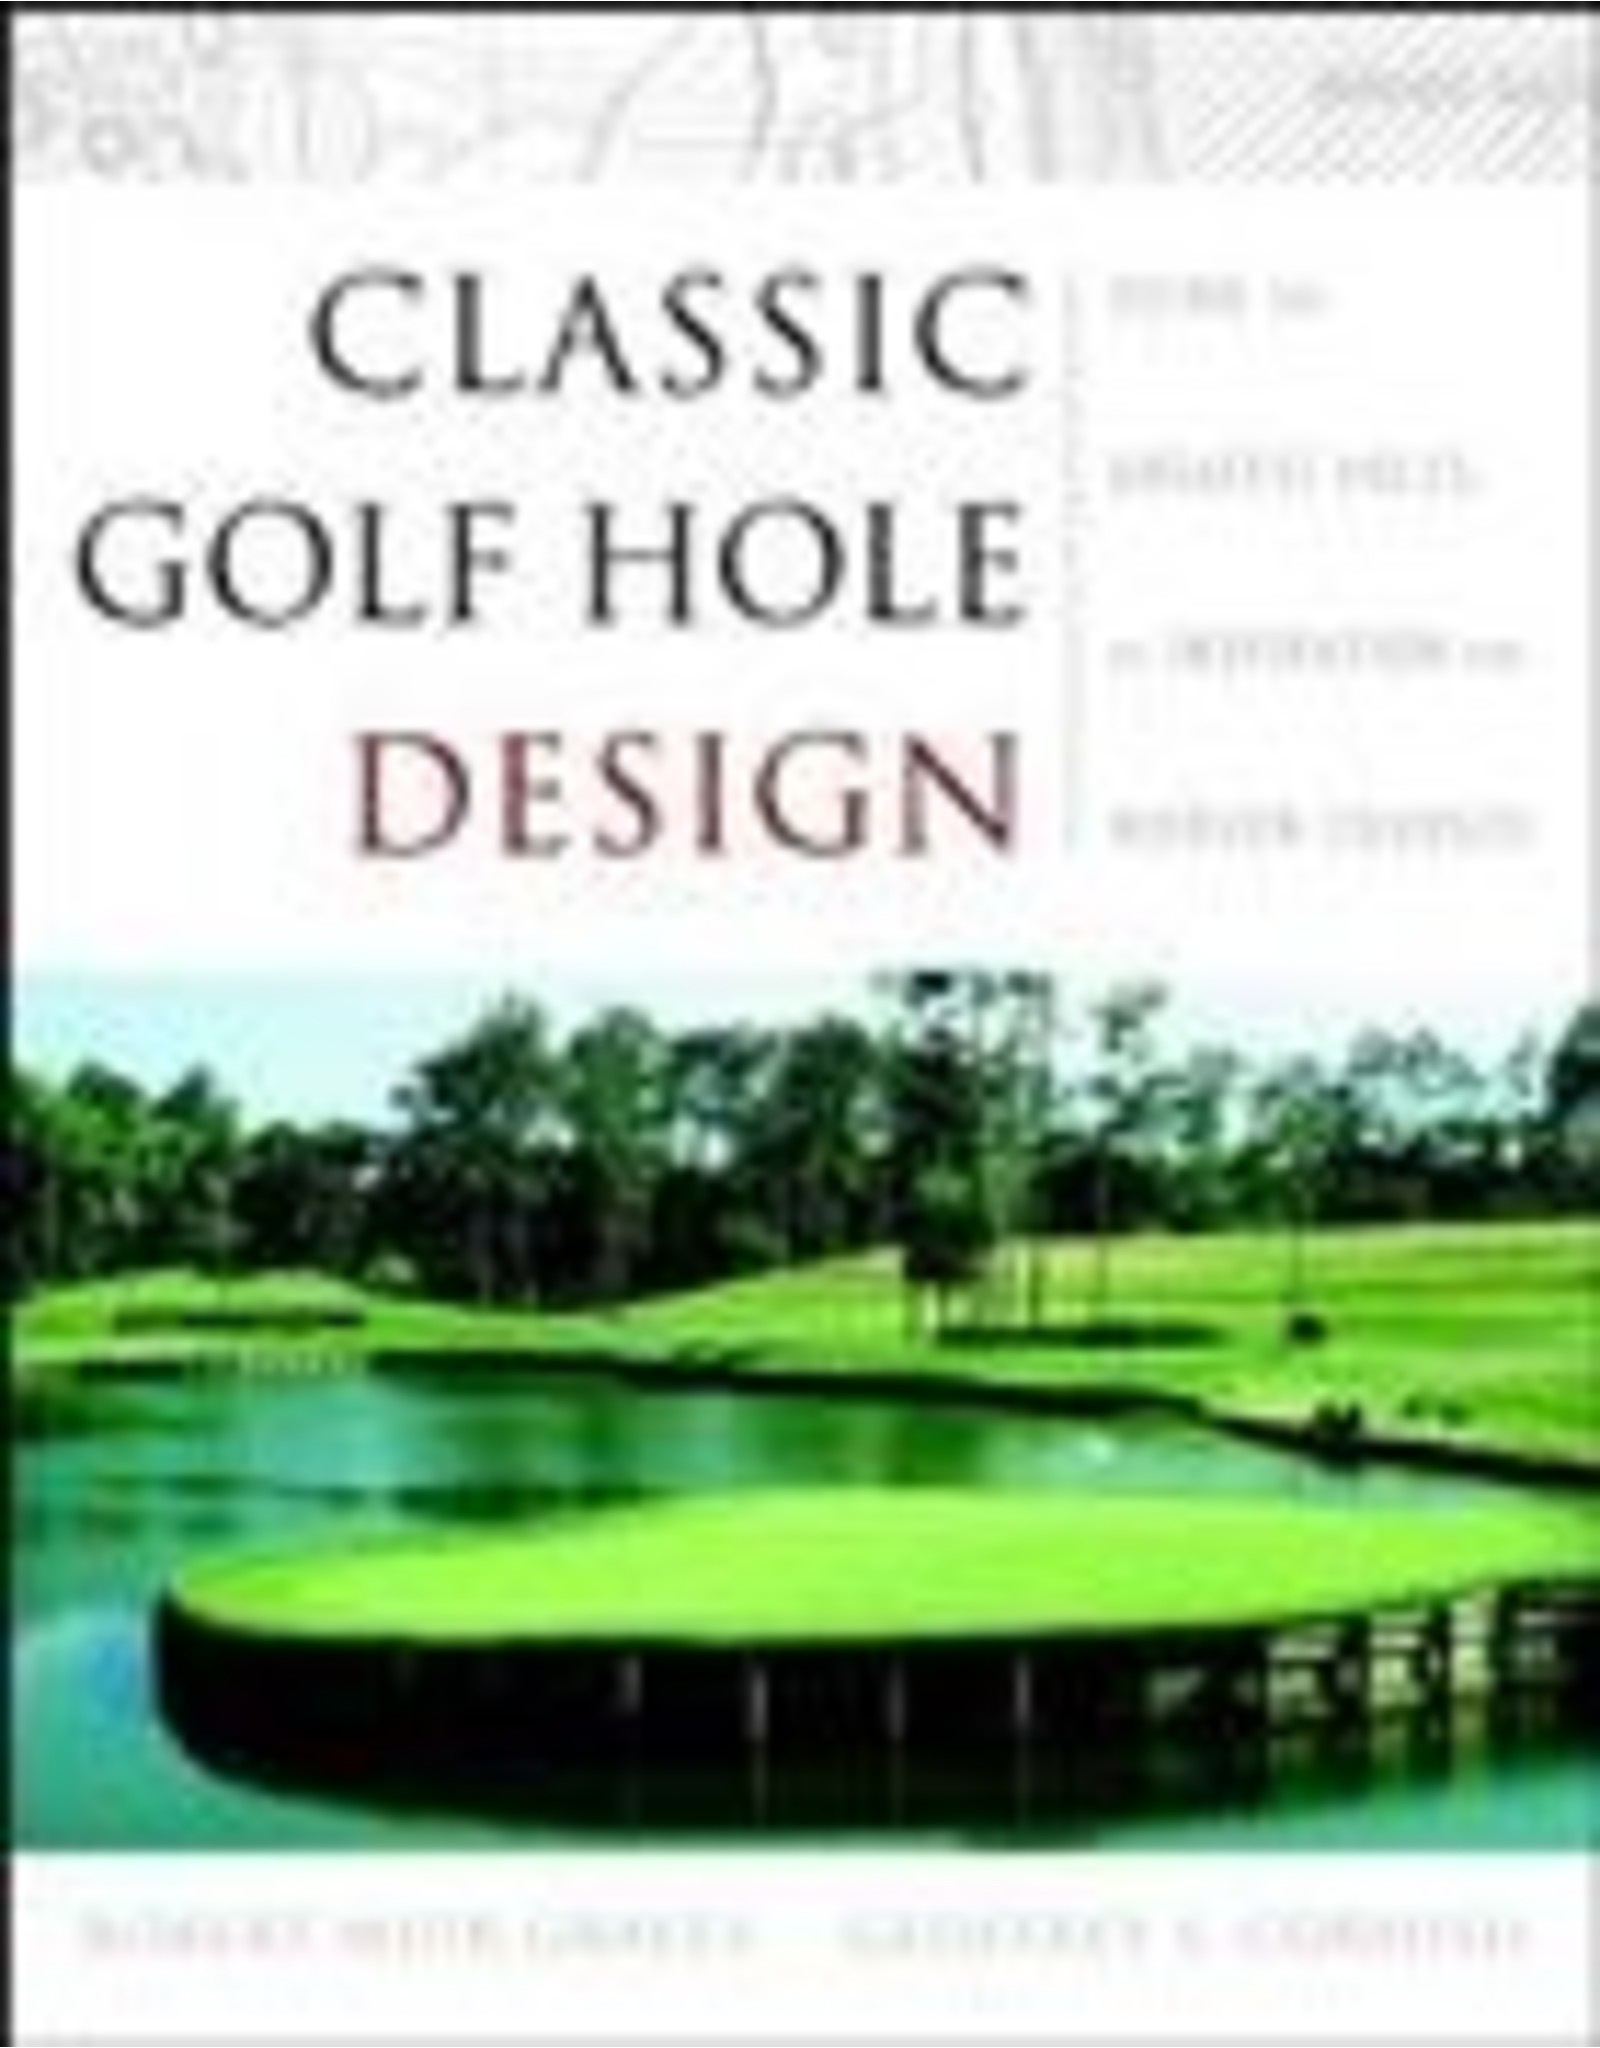 Classic Golf Hole Design